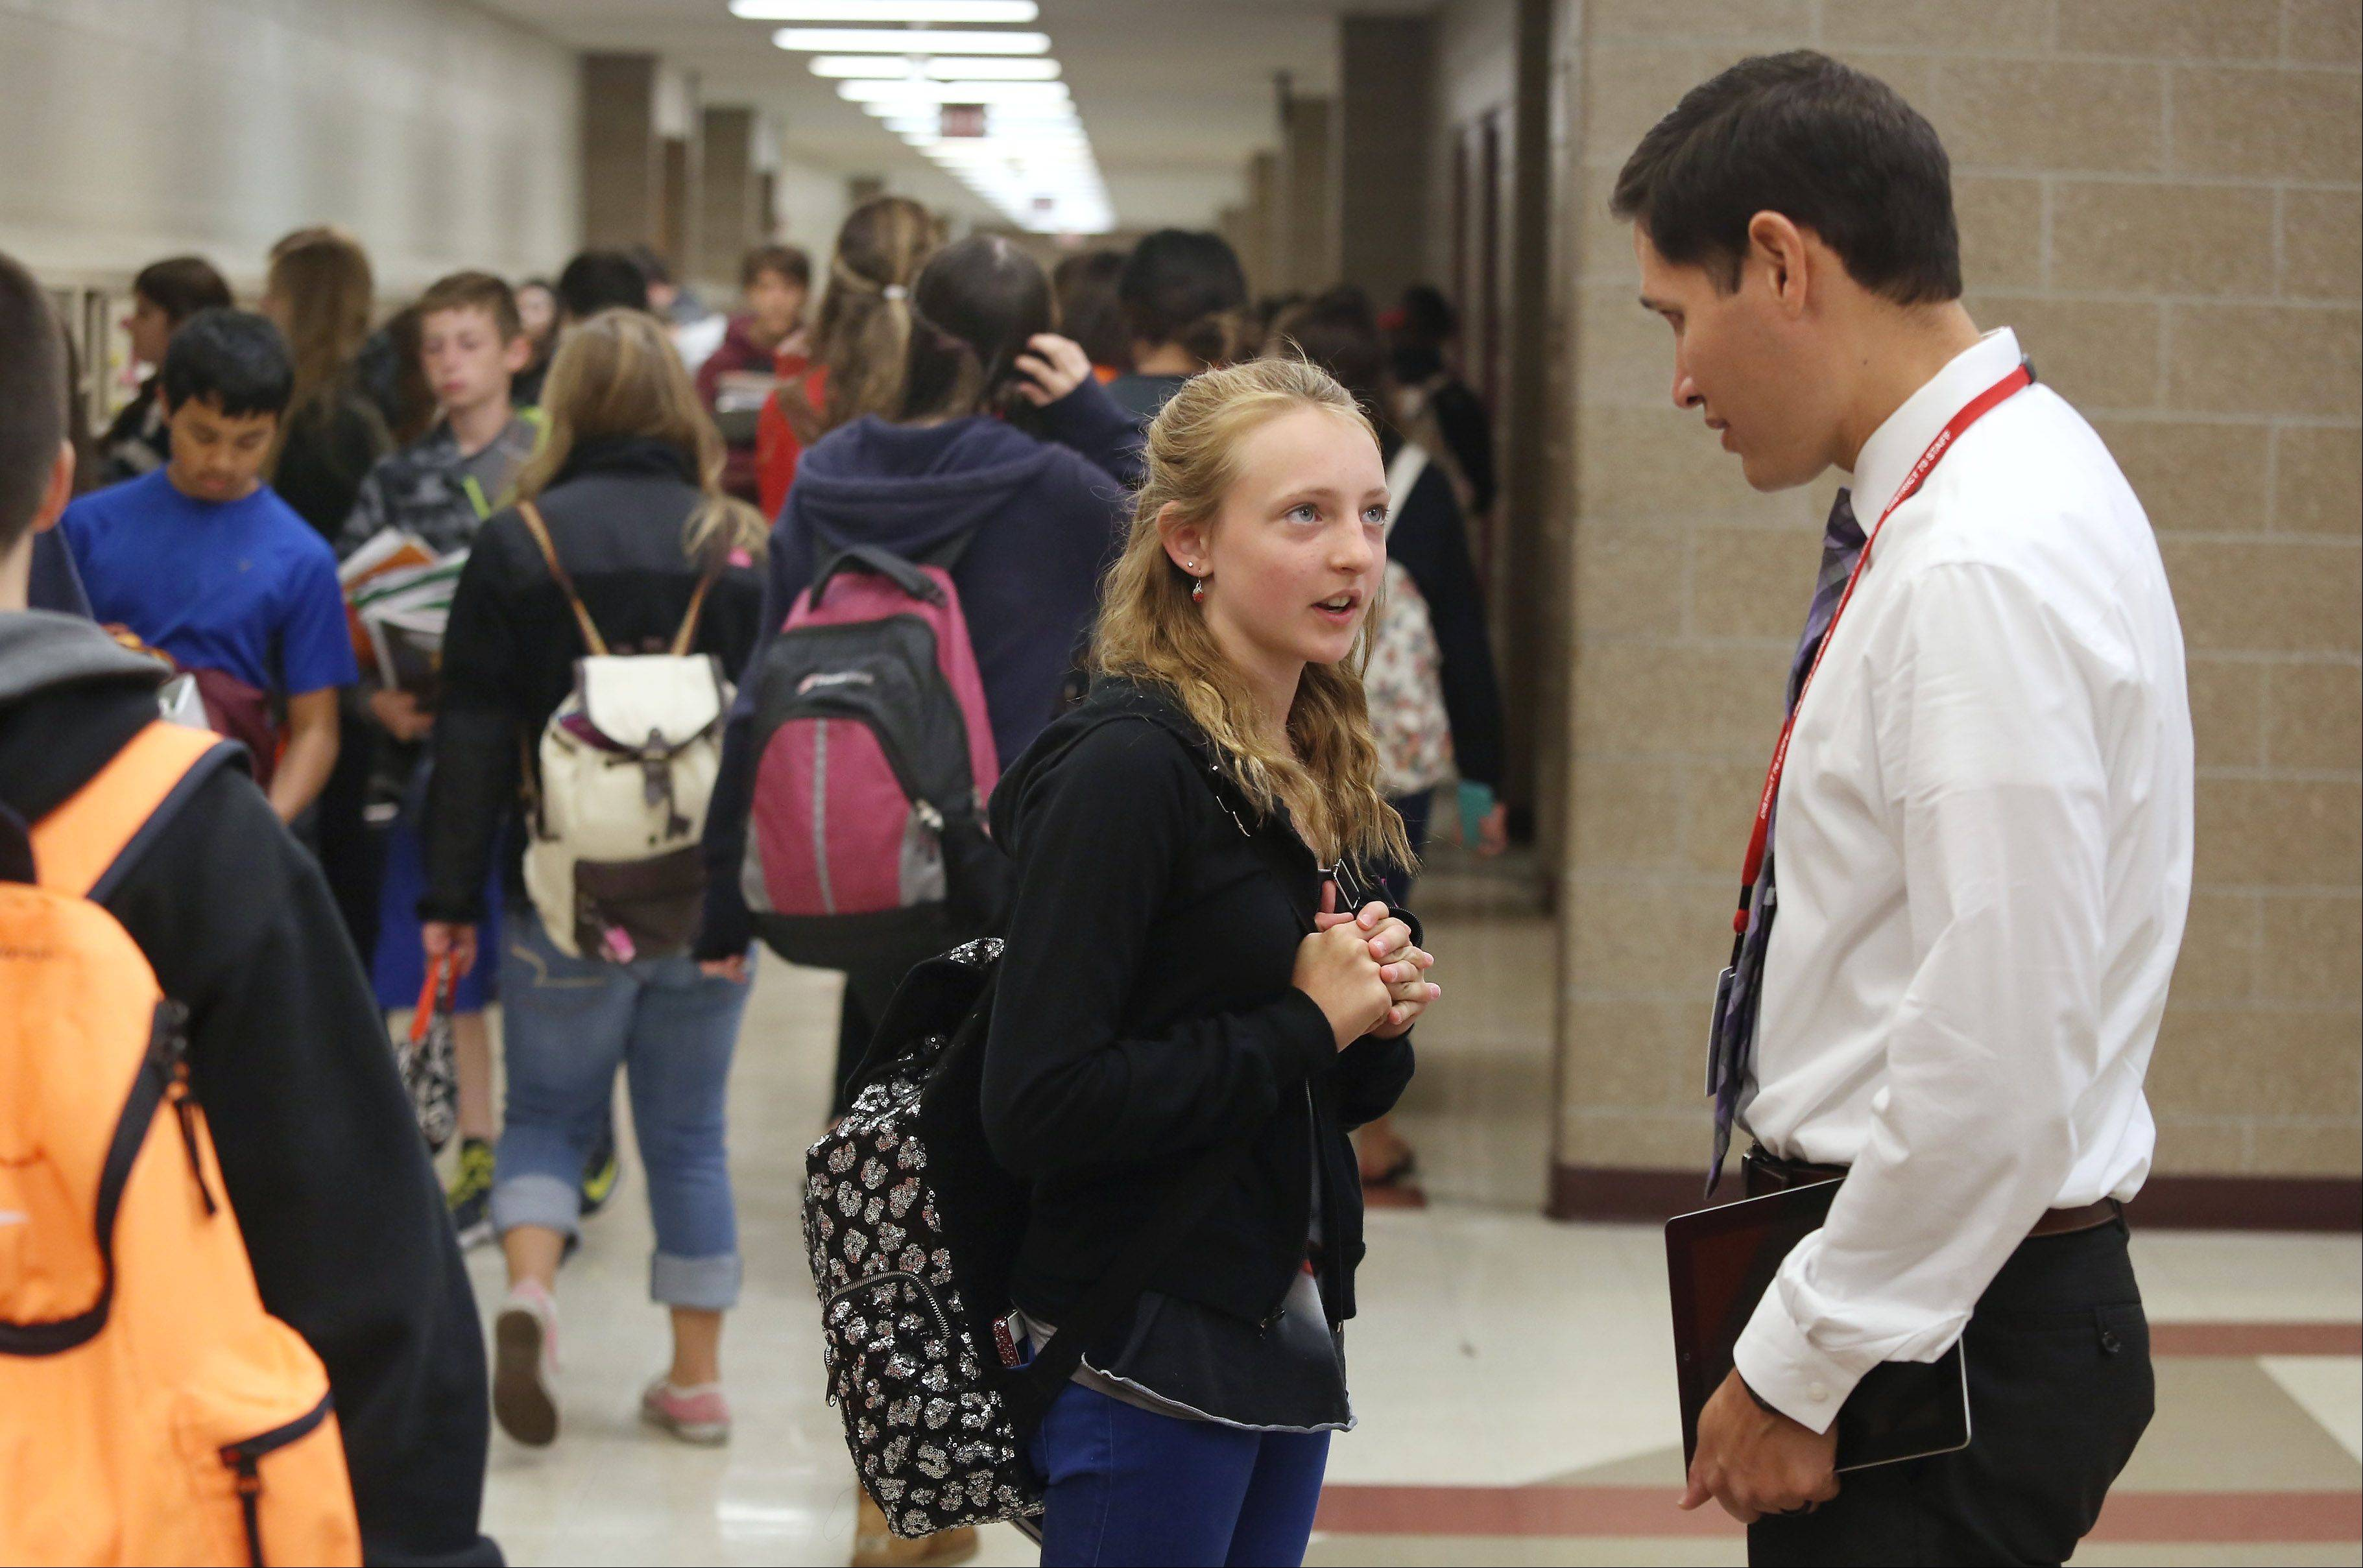 Highland Middle School Assistant Principal Lorenzo Cervantes talks to seventh-grader Madison Hartwig as students switch classes. Cervantes has been involved with the new online bullying forms at the Libertyville school.